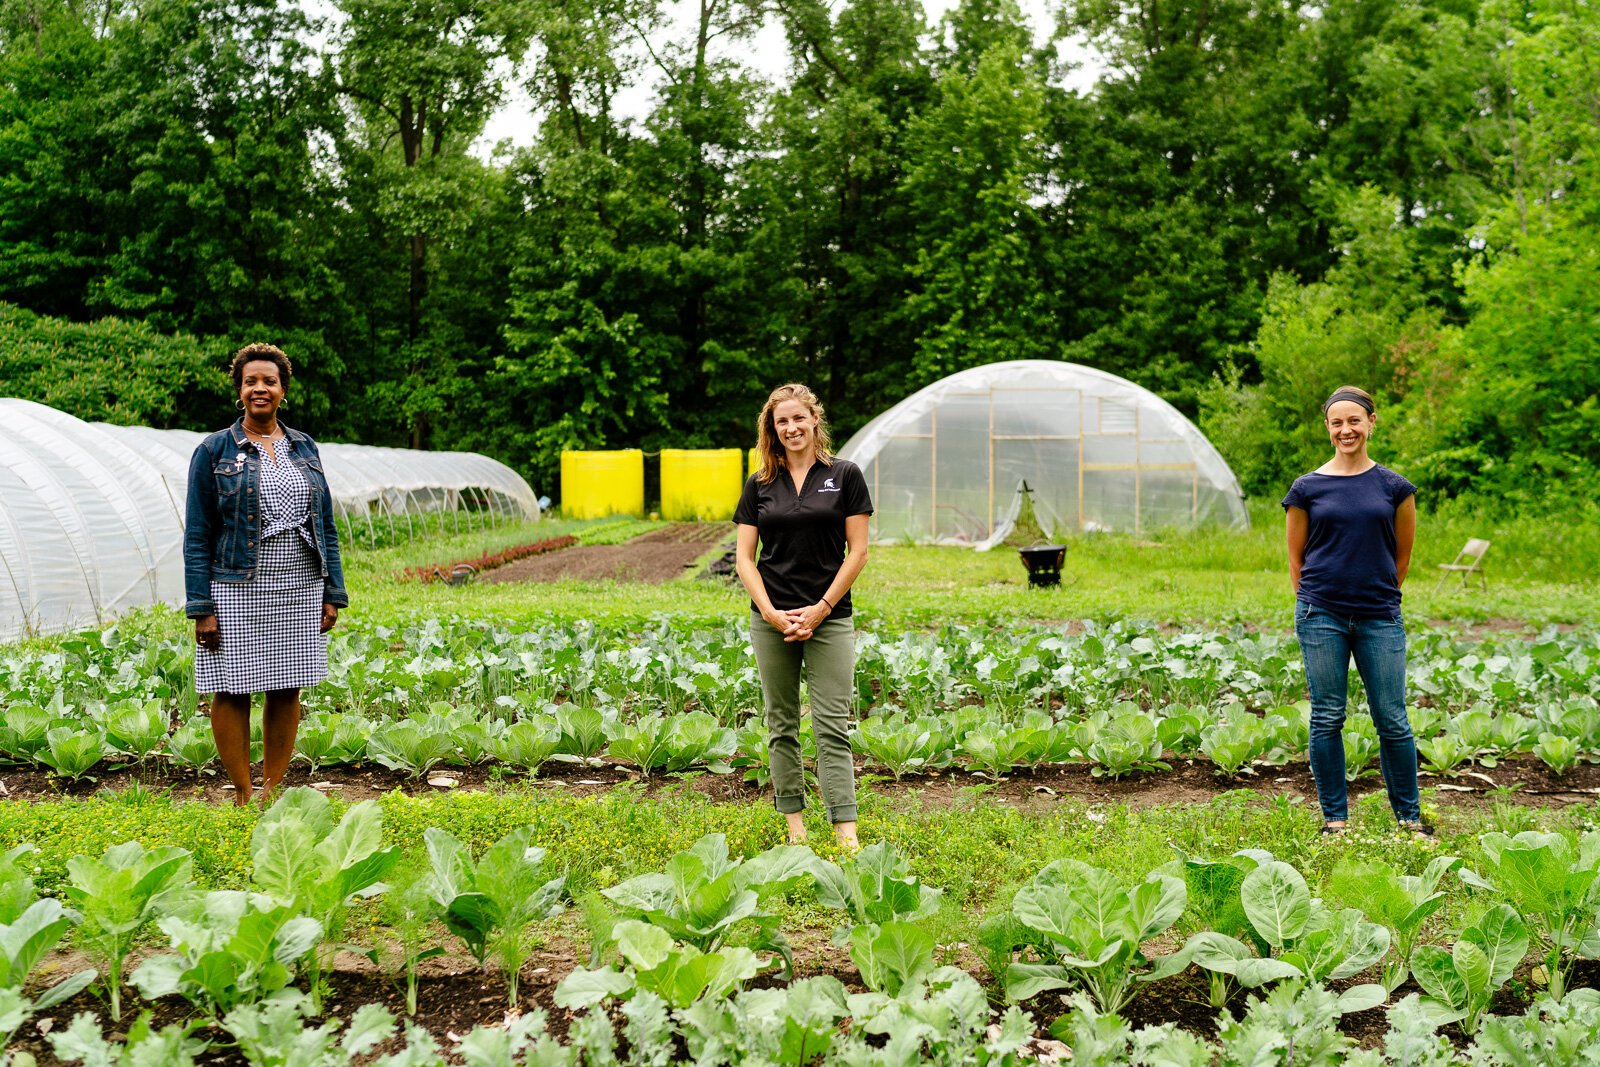 Winona Bynum, Jae Gerhart, and Kelly Wilson at Old City Acres farm in Belleville.